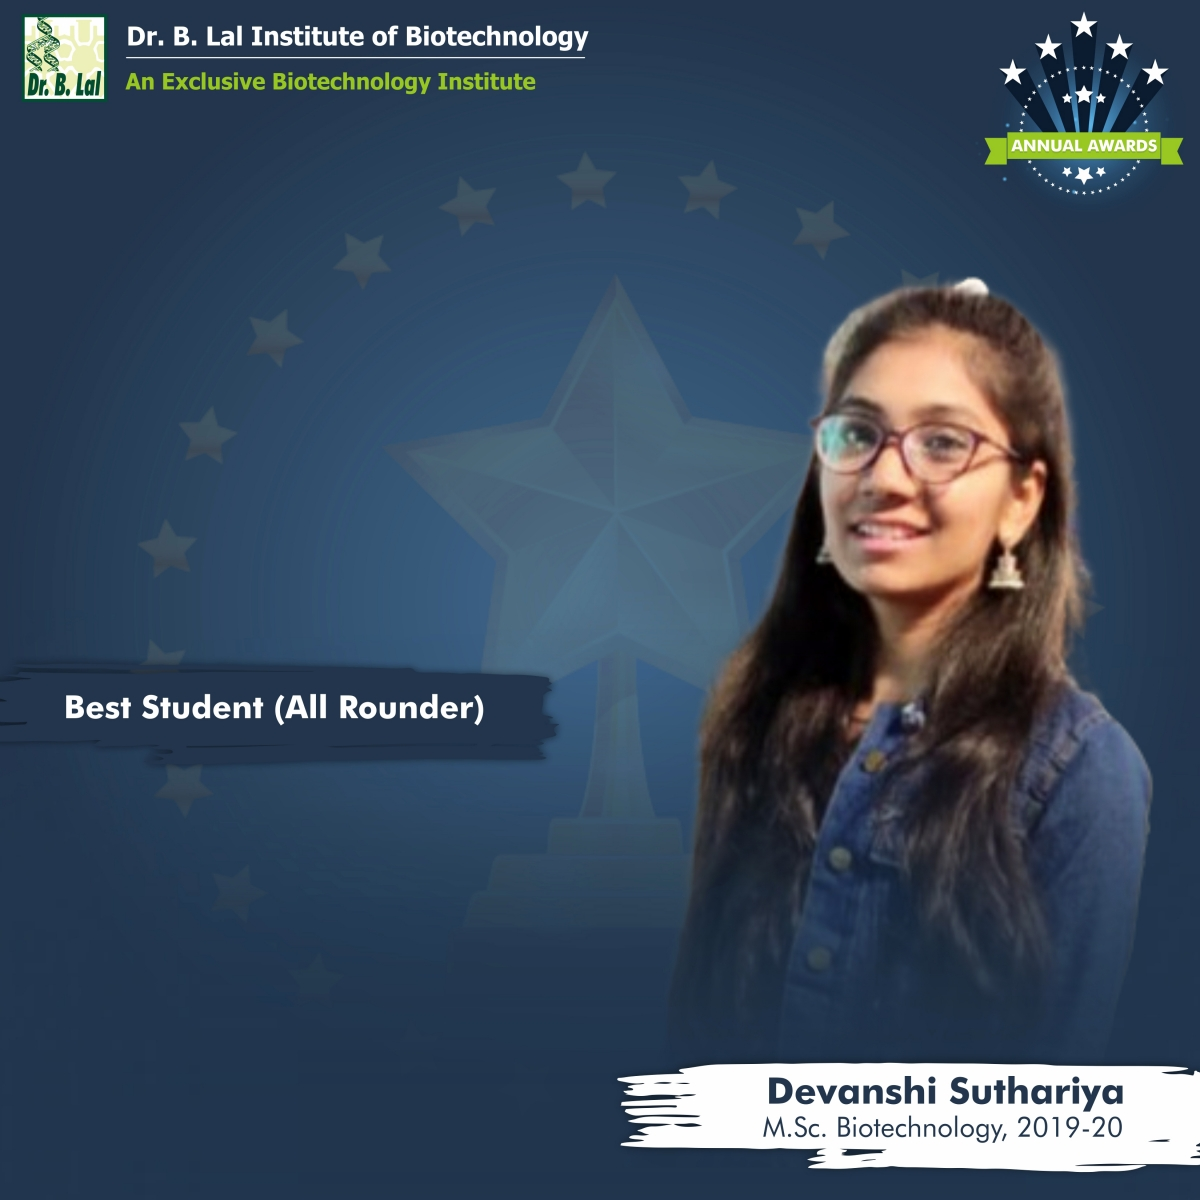 Best Student (All-Rounder) | Annual Awards